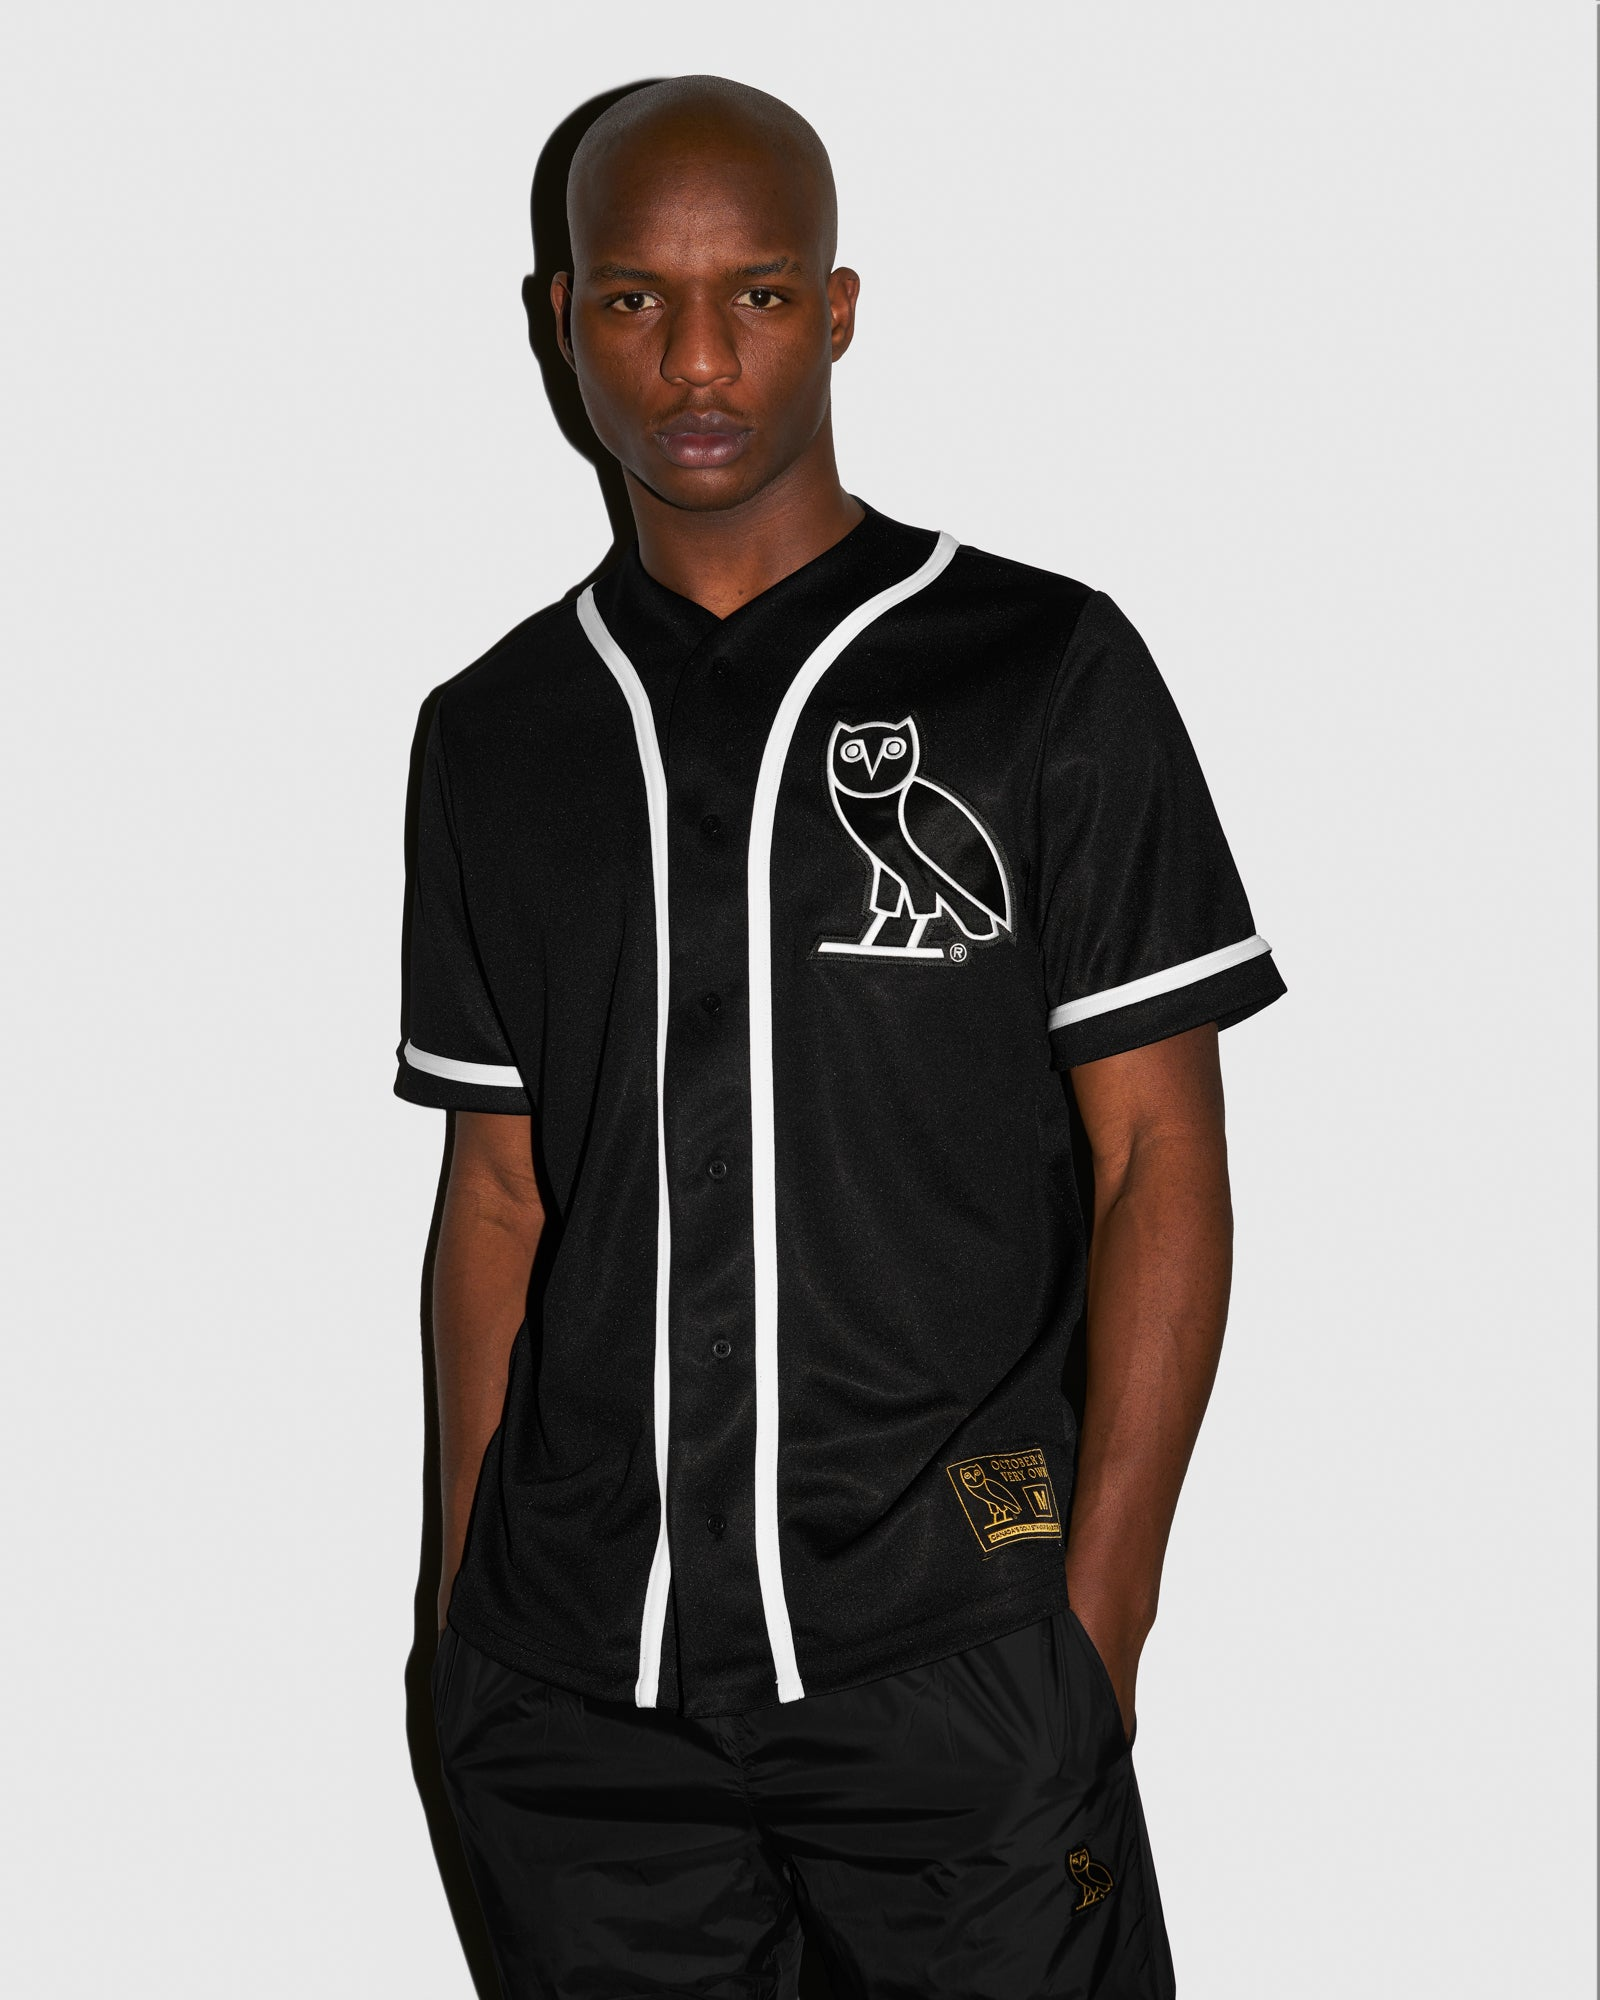 OVO BASEBALL JERSEY - BLACK